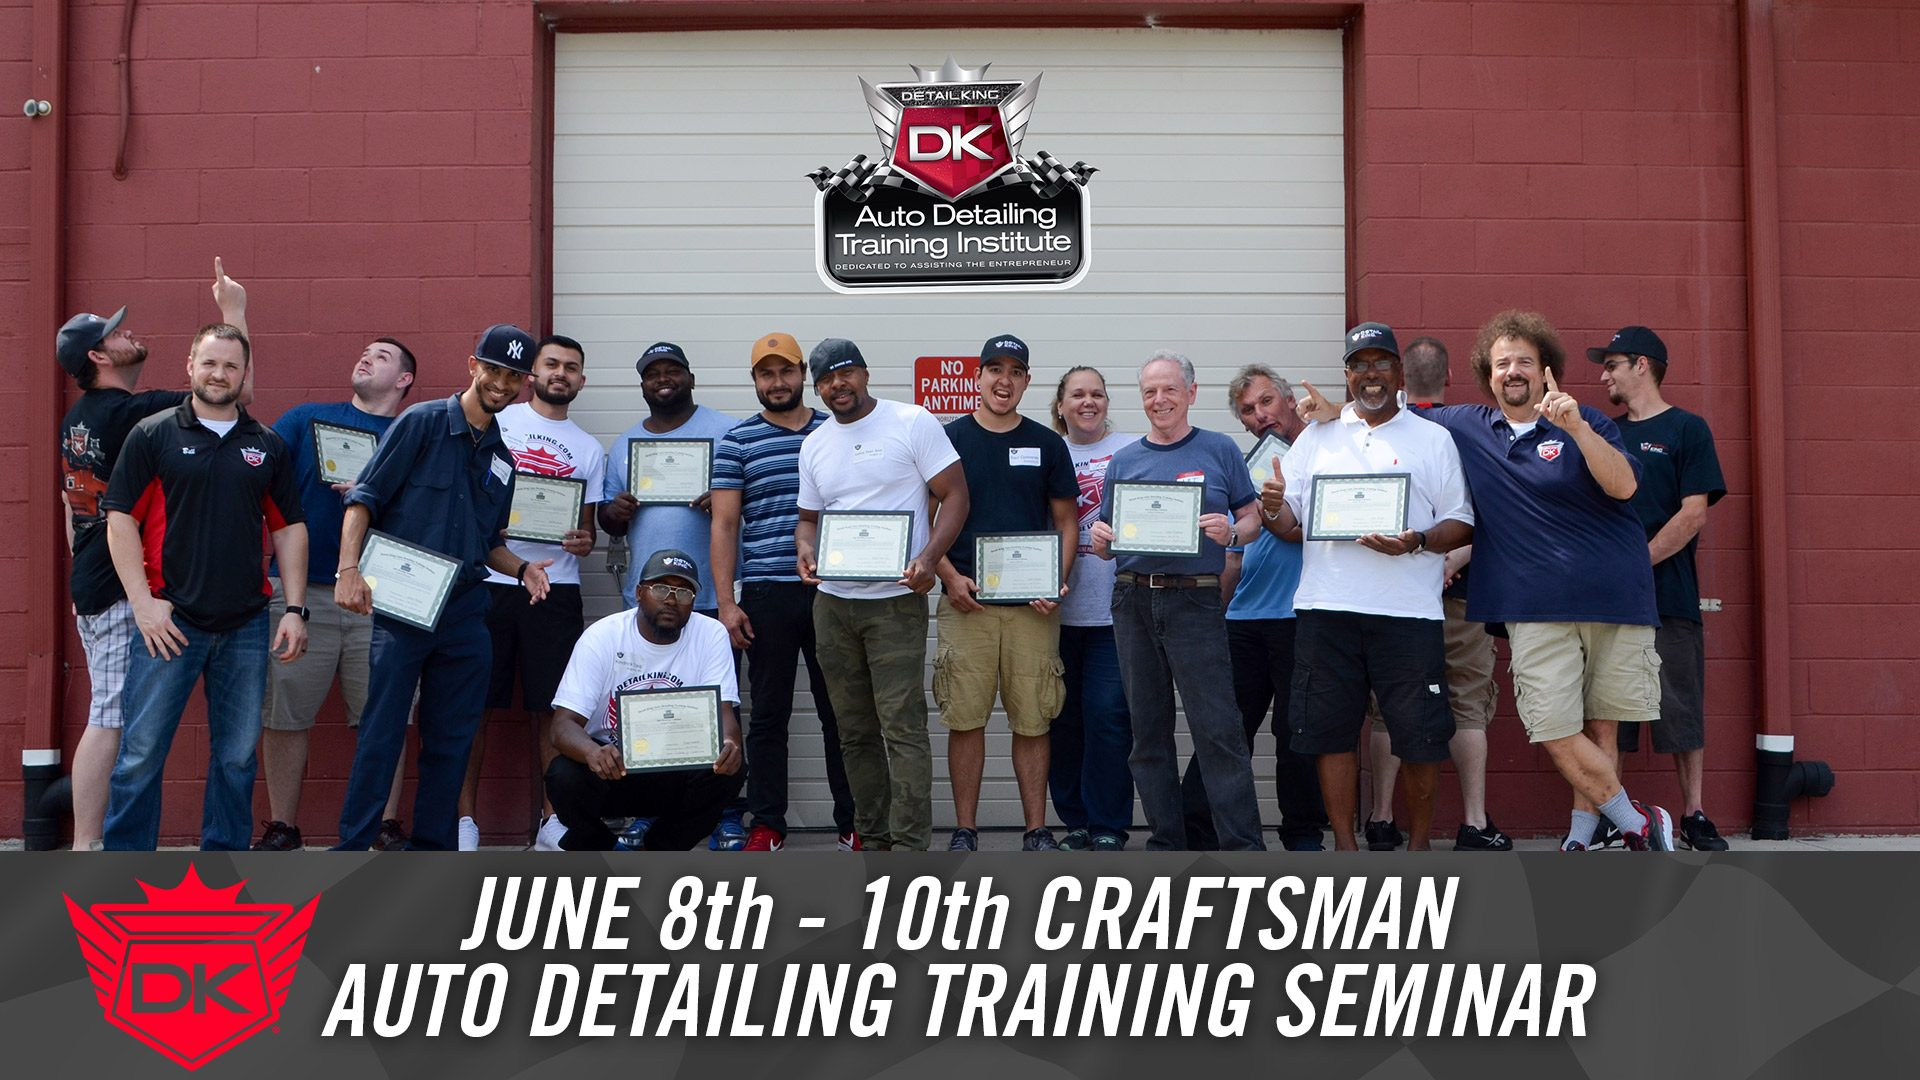 June 8th – 10th 2018 Craftsman Auto Detailing Training Seminar